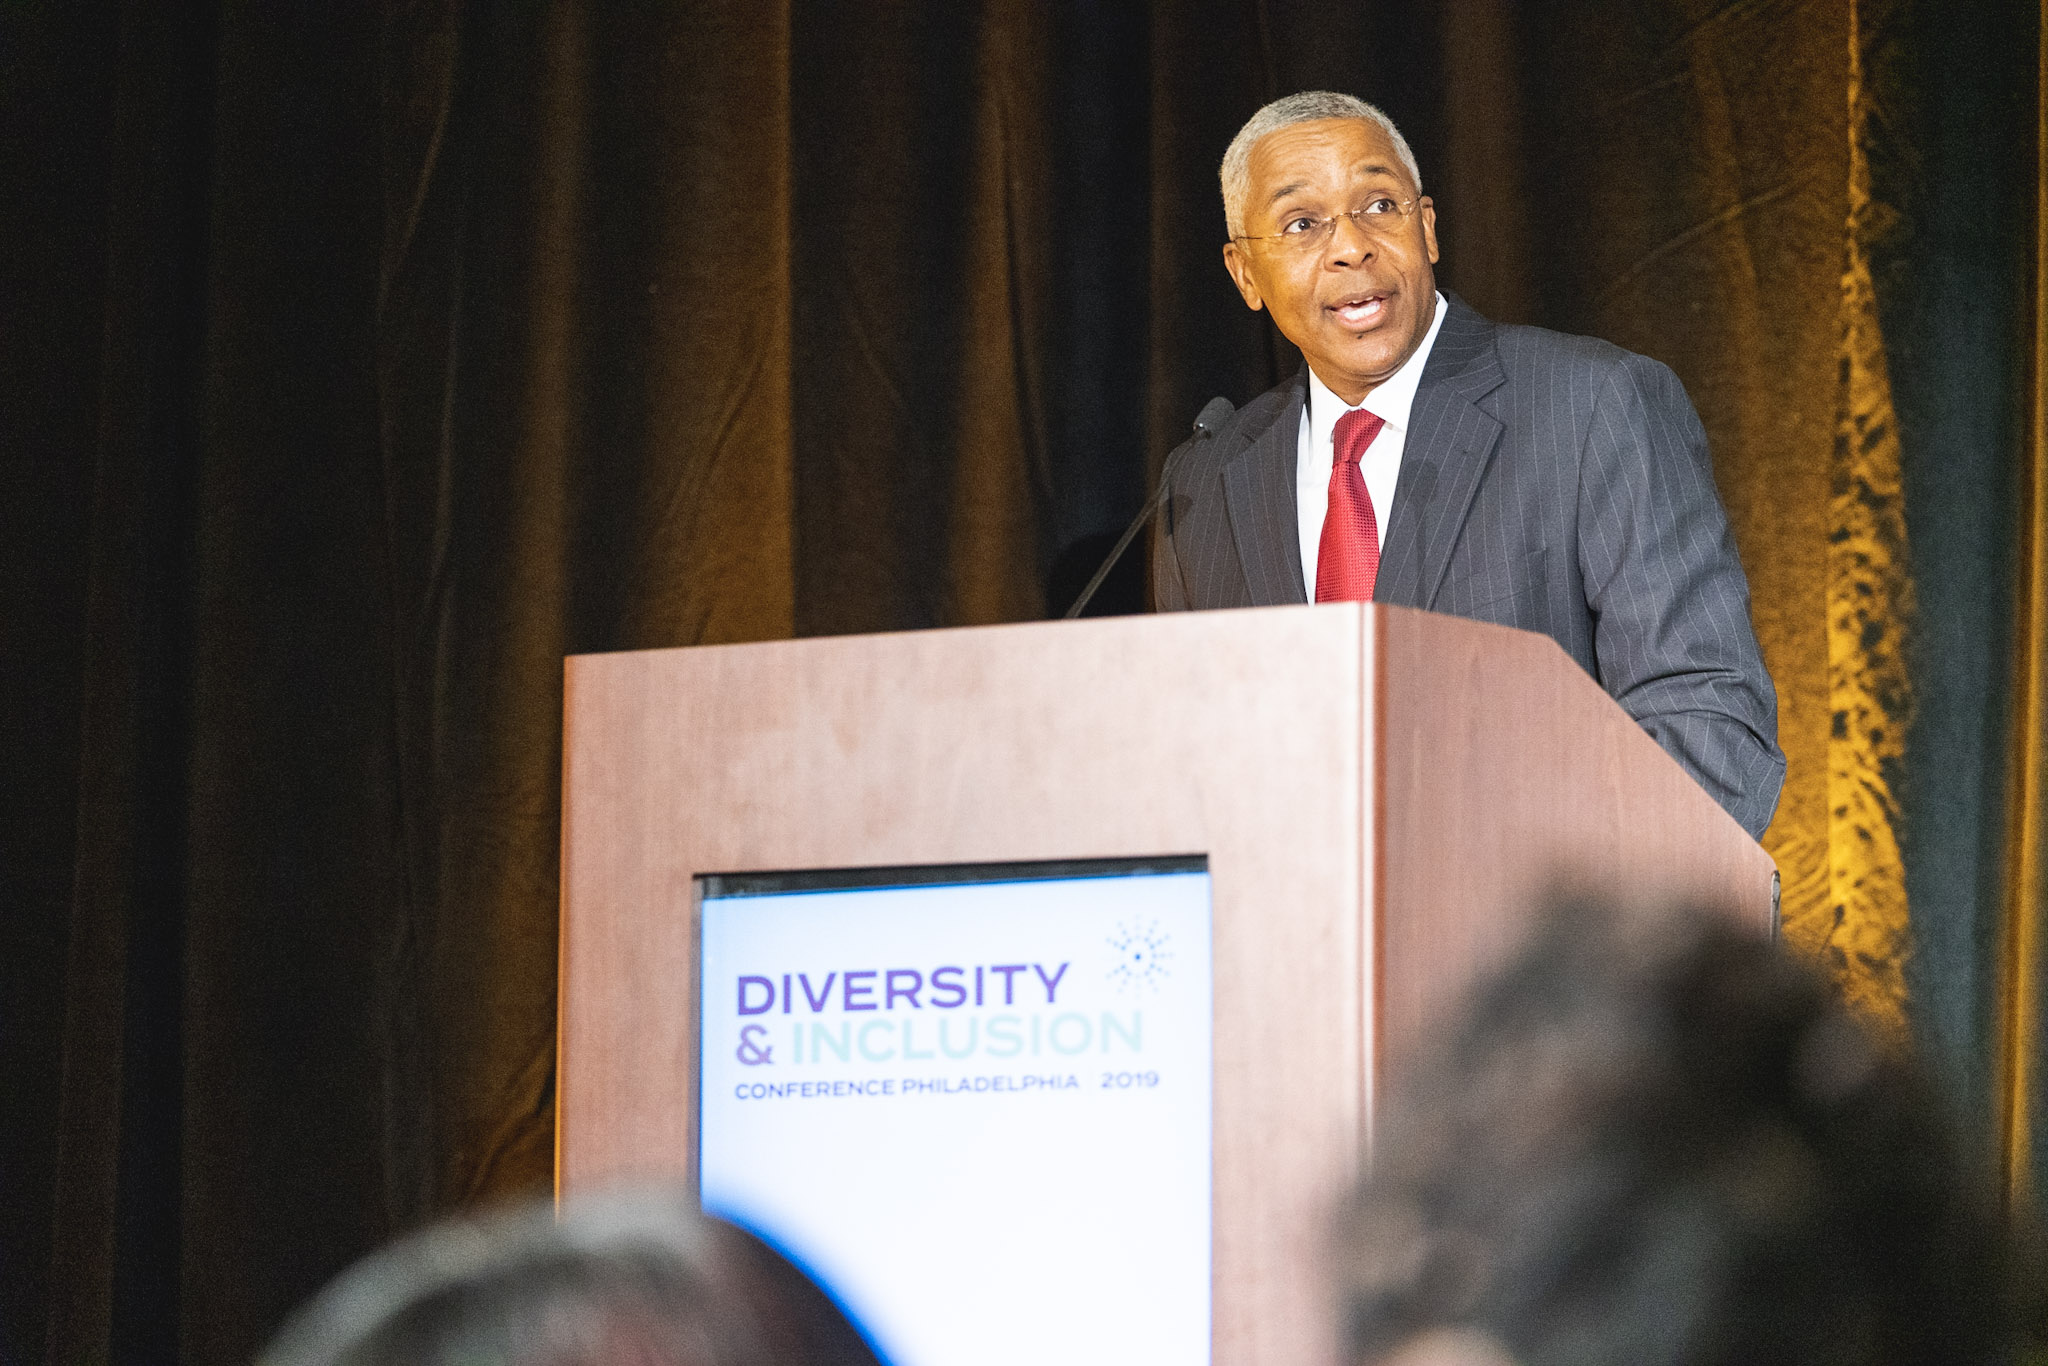 2019 Philadelphia Diversity & Inclusion Conference-107127-March 25, 2019101.jpg